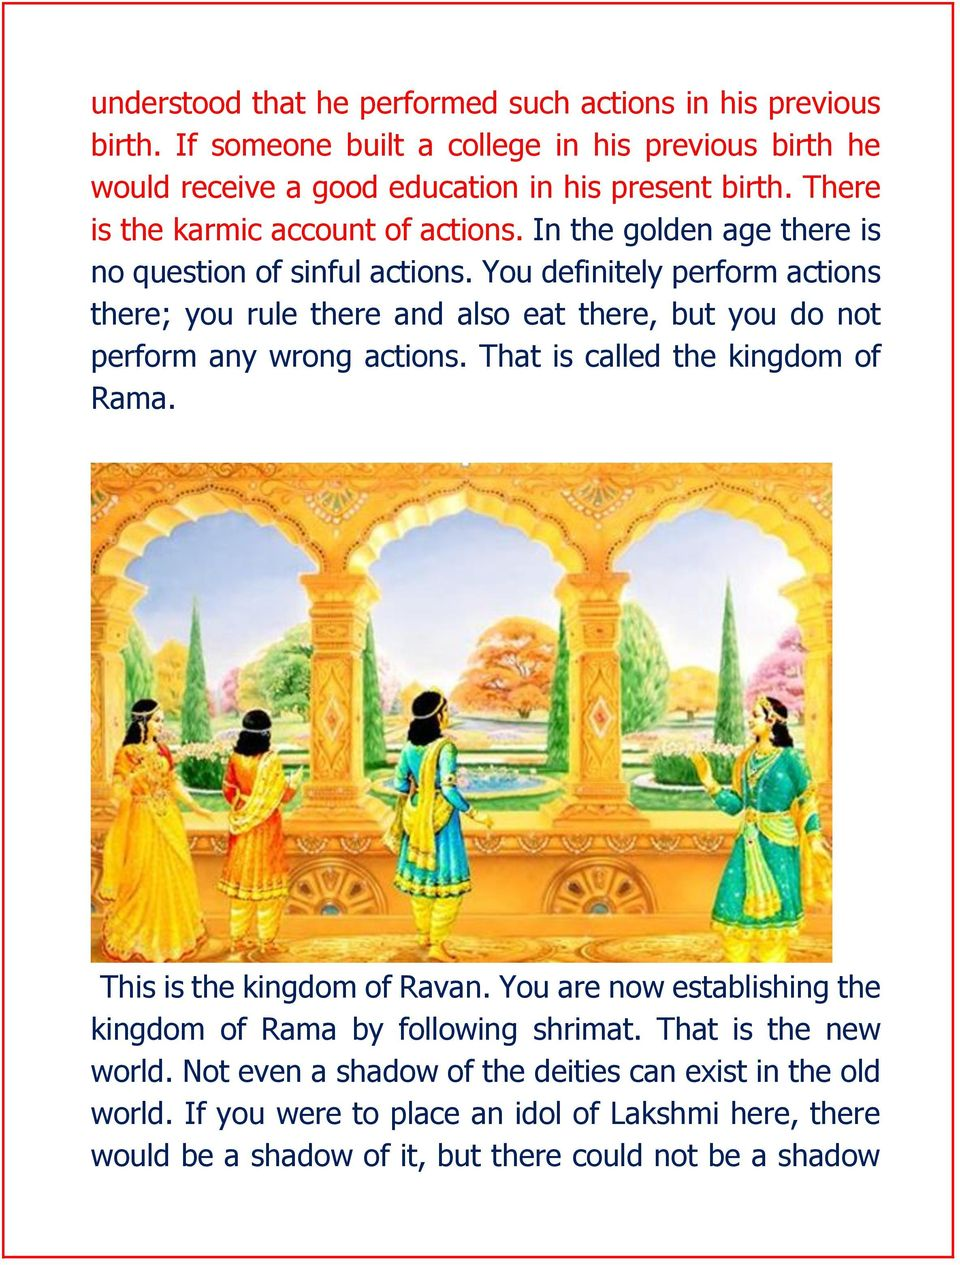 You definitely perform actions there; you rule there and also eat there, but you do not perform any wrong actions. That is called the kingdom of Rama.